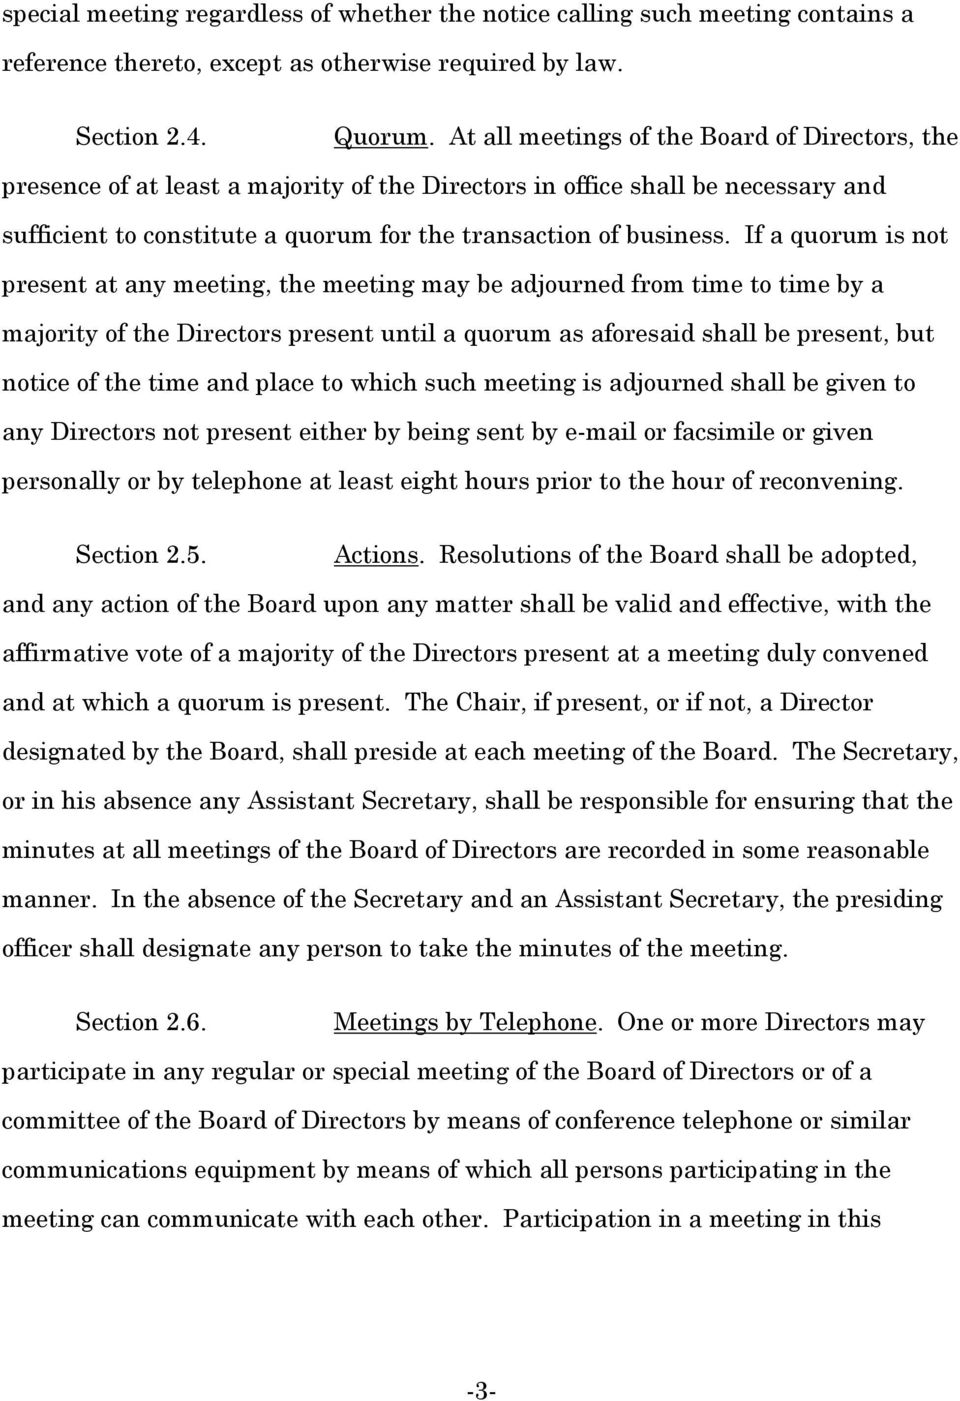 If a quorum is not present at any meeting, the meeting may be adjourned from time to time by a majority of the Directors present until a quorum as aforesaid shall be present, but notice of the time